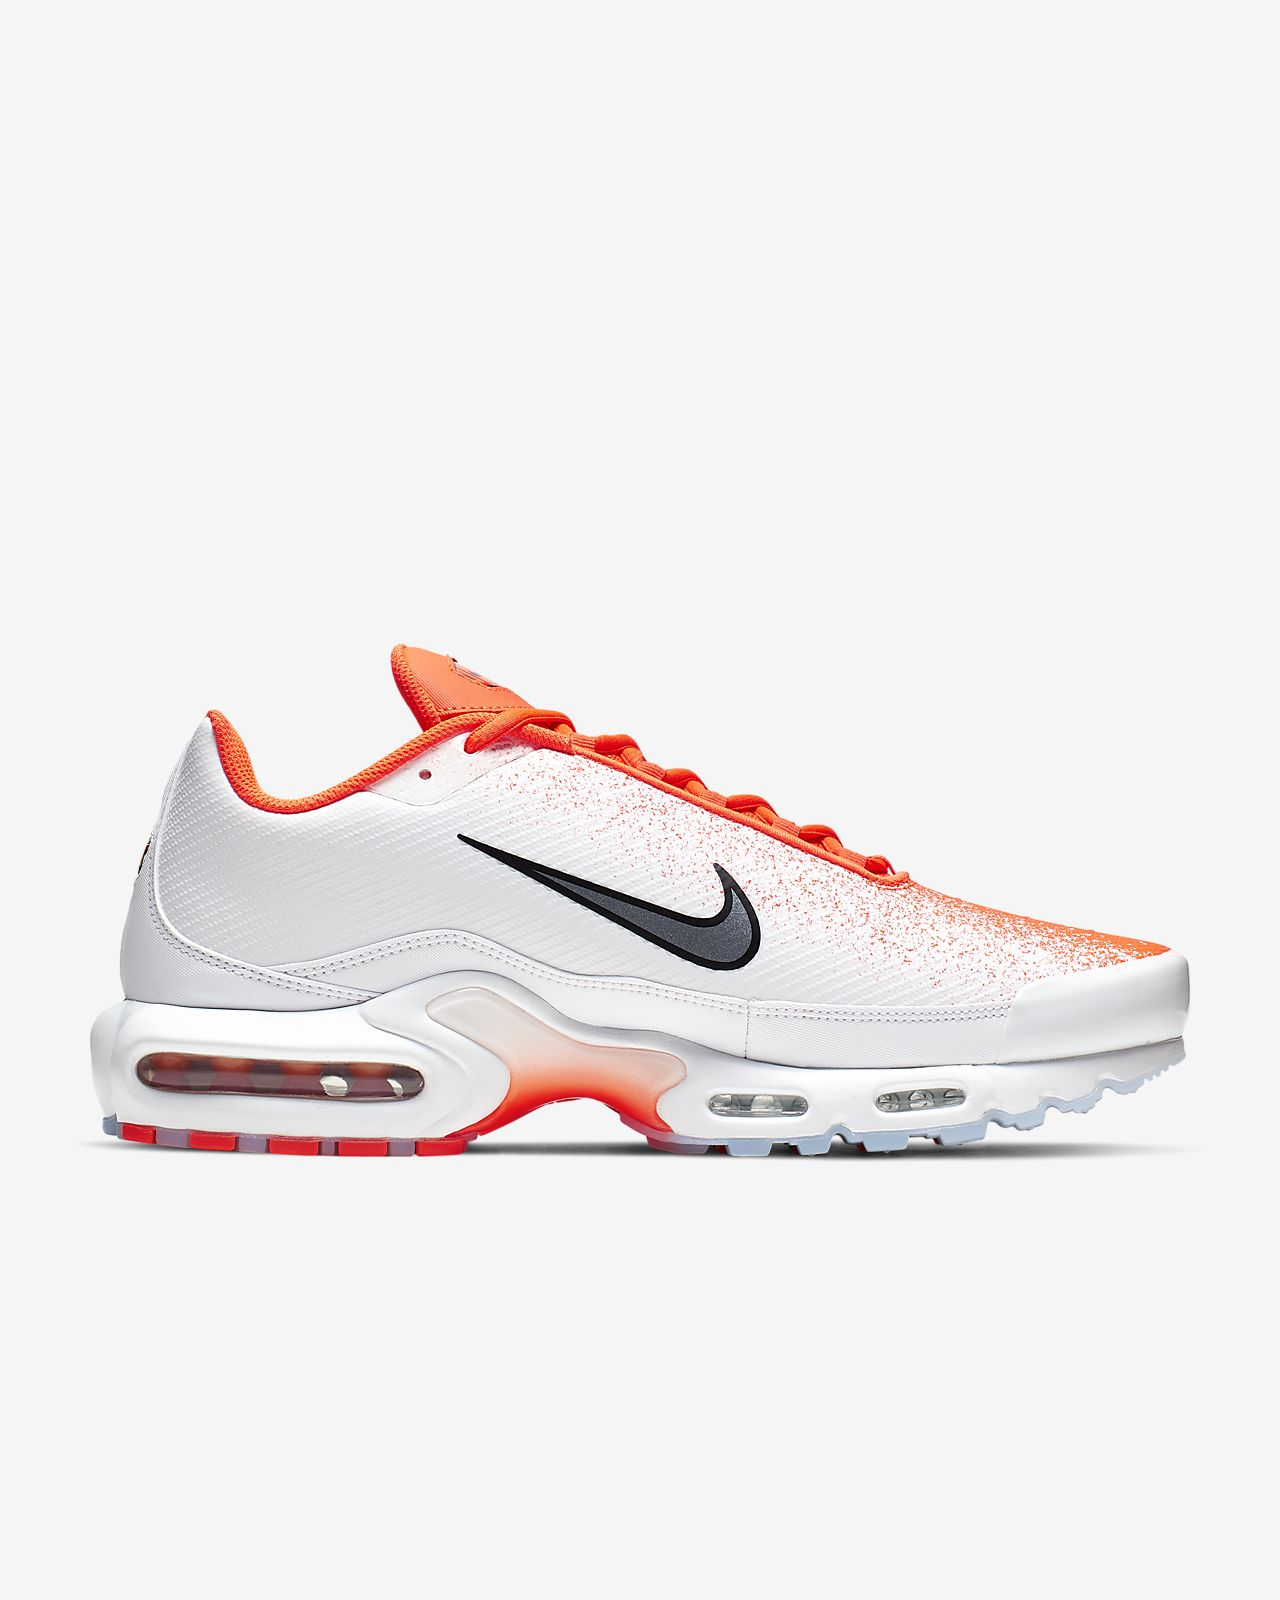 detailed pictures 0305c f65a0 Nike Air Max Plus Tn SE Men's Shoe